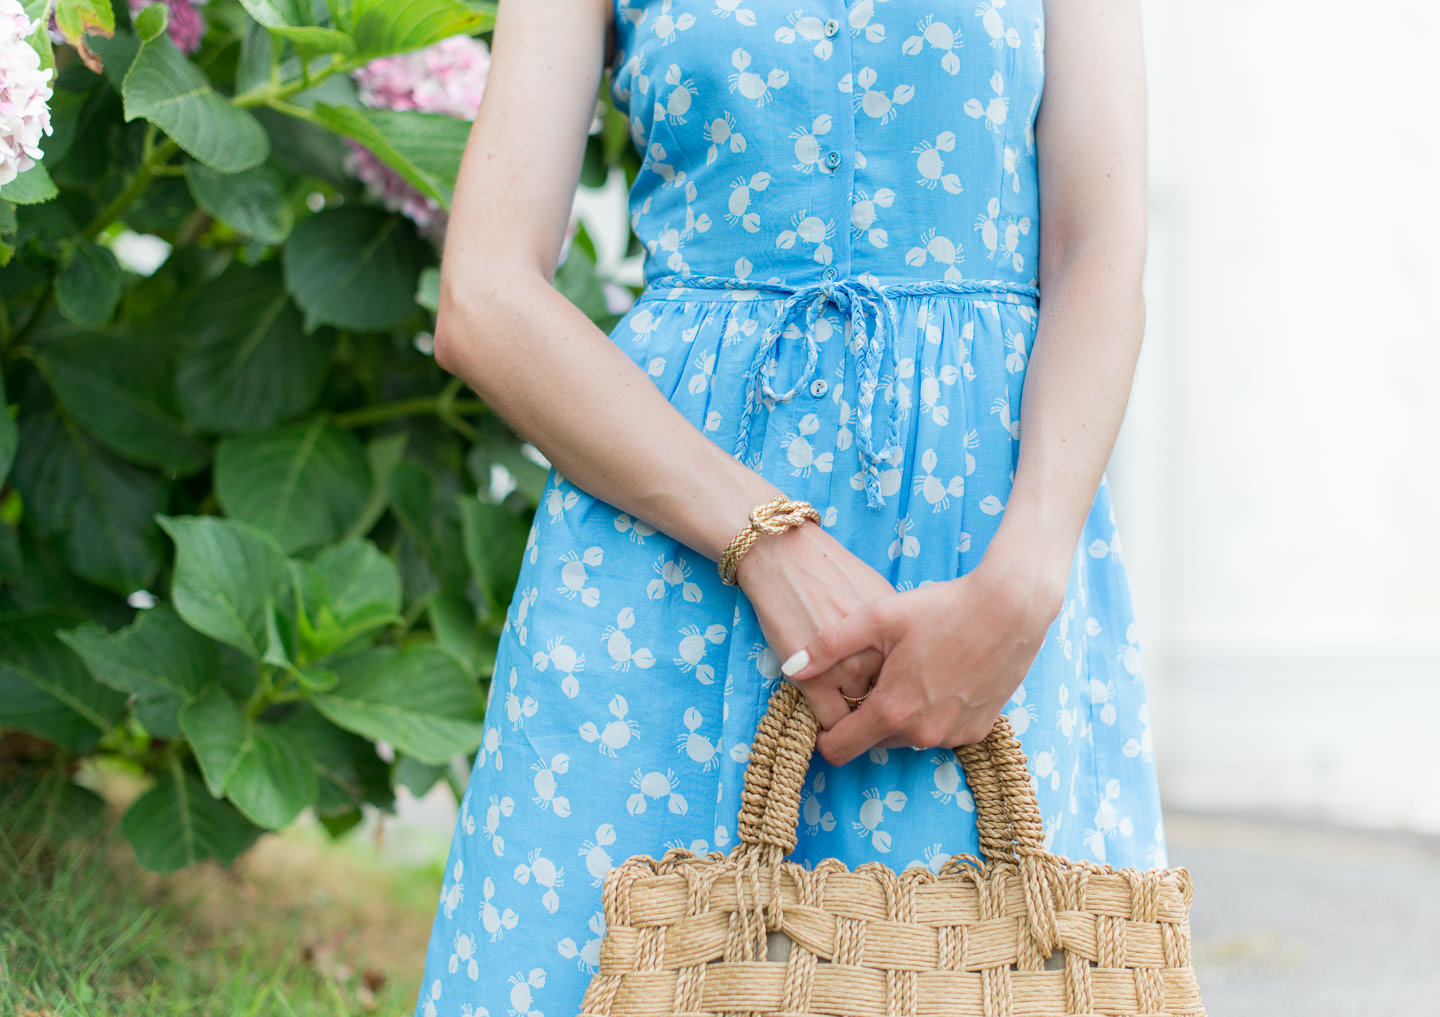 Blog-Mode-And-The-City-Looks-Hortensias-Biarritz-4